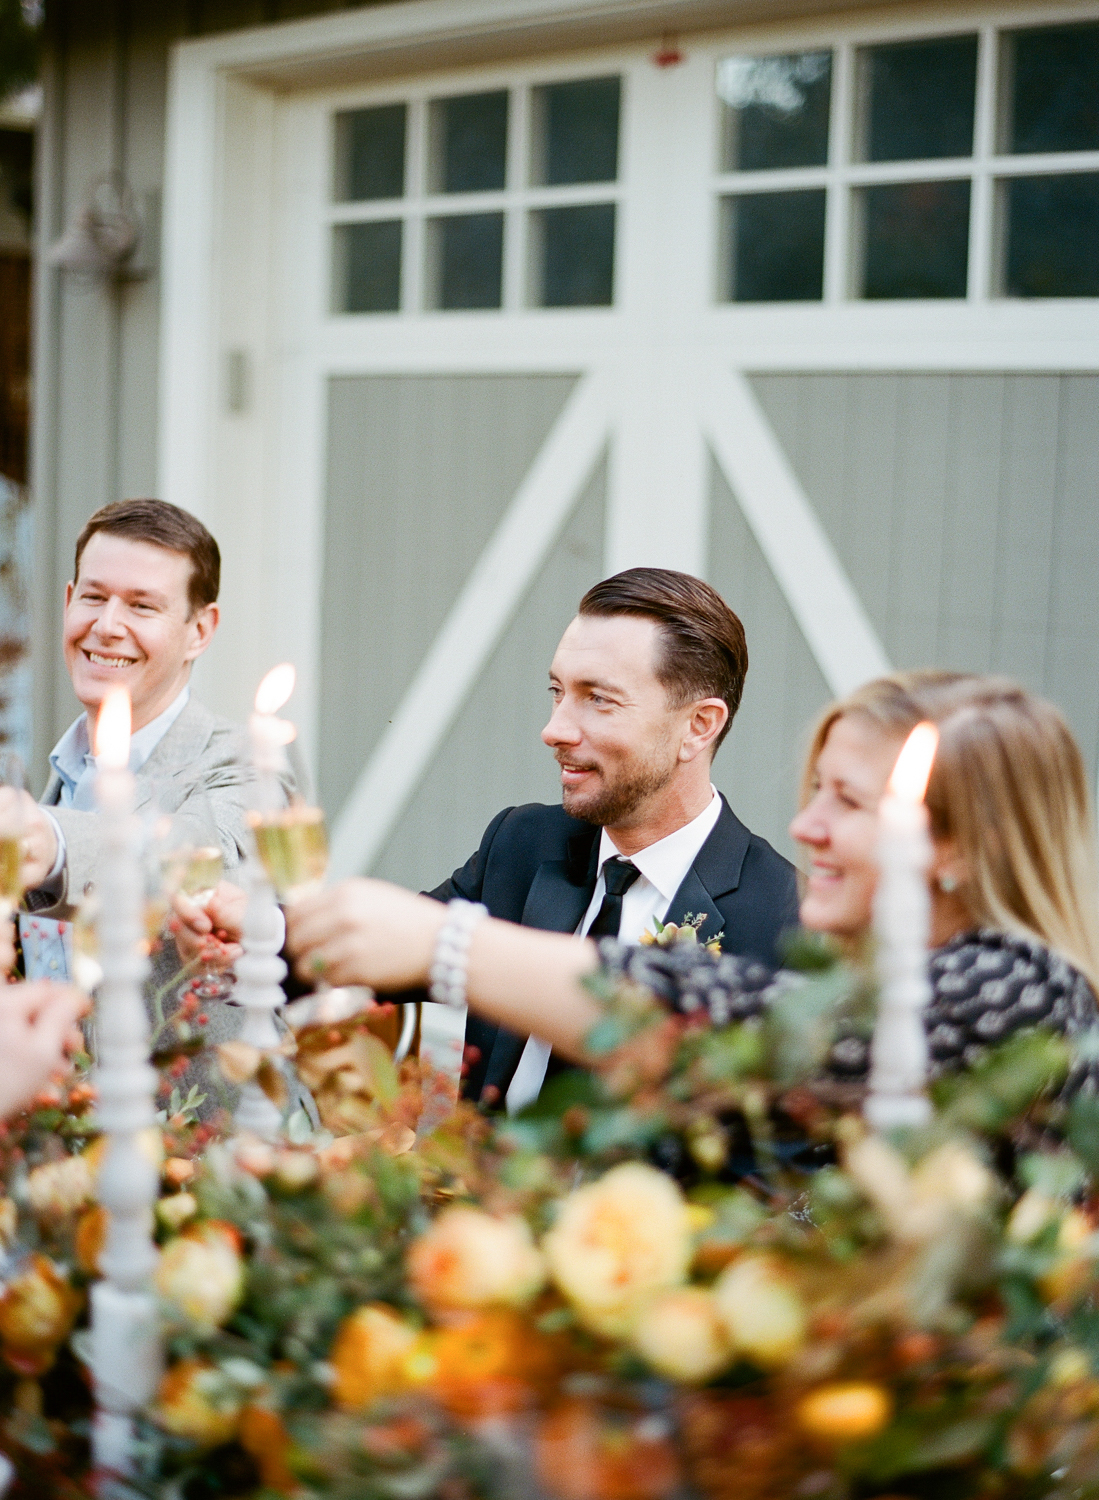 Grooms toast champagne with wedding guests at their outdoor reception in St. Helena, California; Sylvie Gil Photography